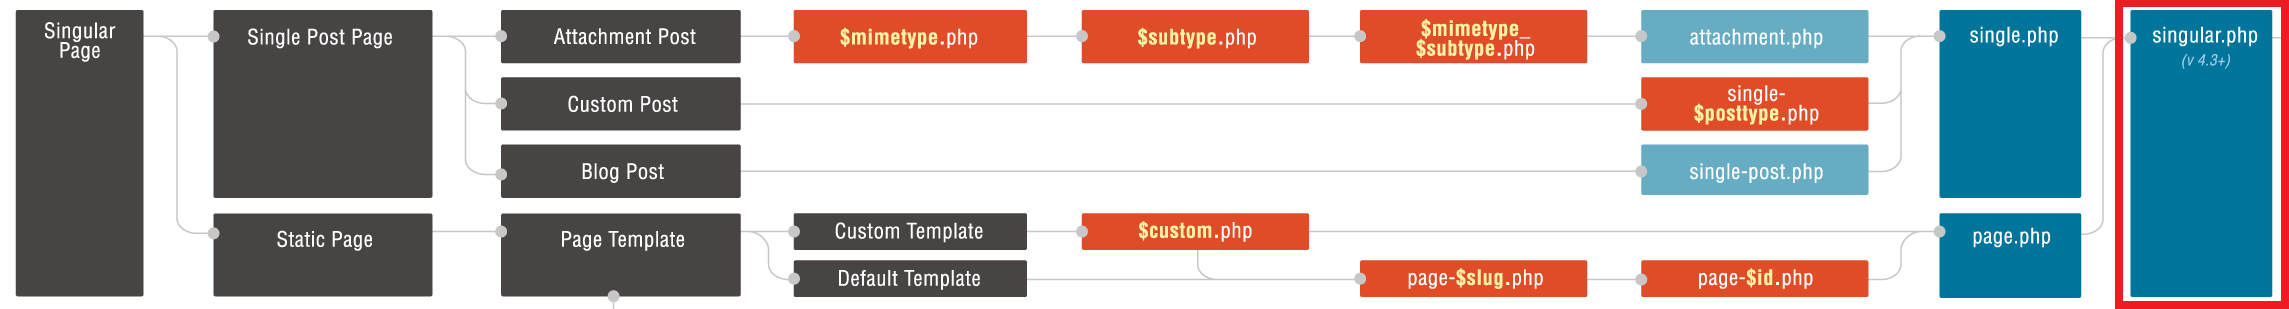 Template hierarchy for singular post types